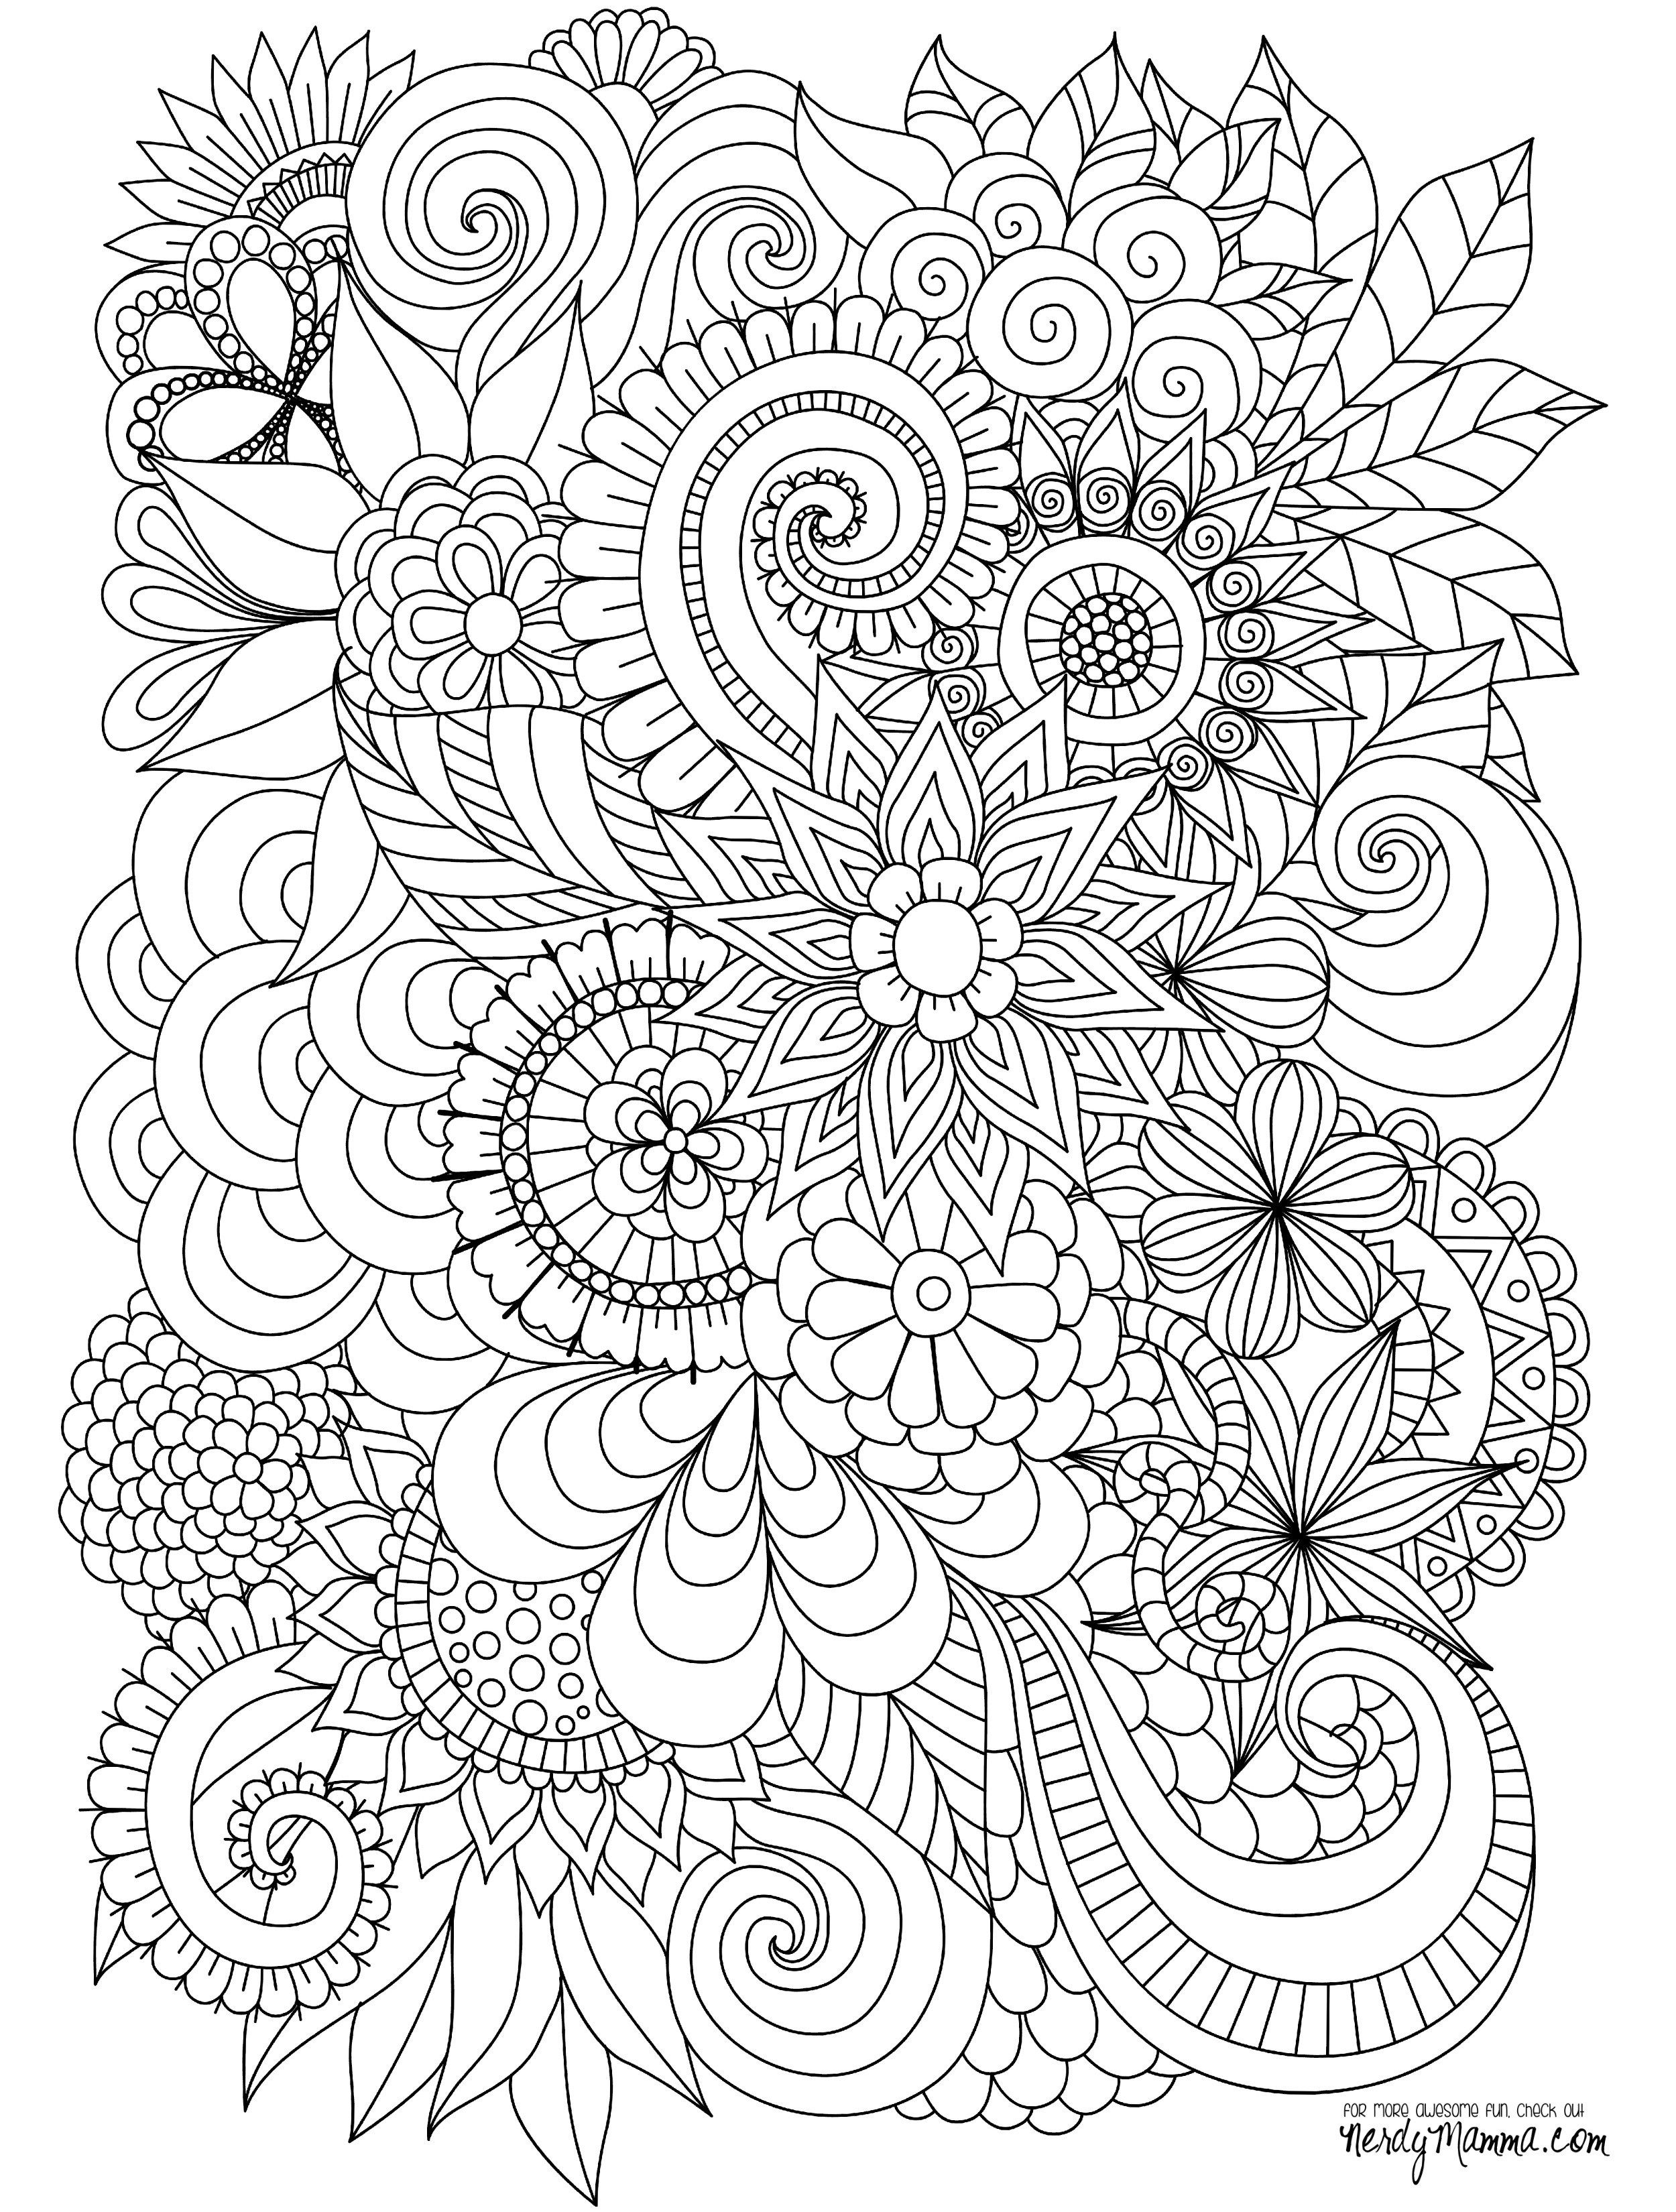 Abstract Flower Coloring Pages at GetDrawings.com   Free ...